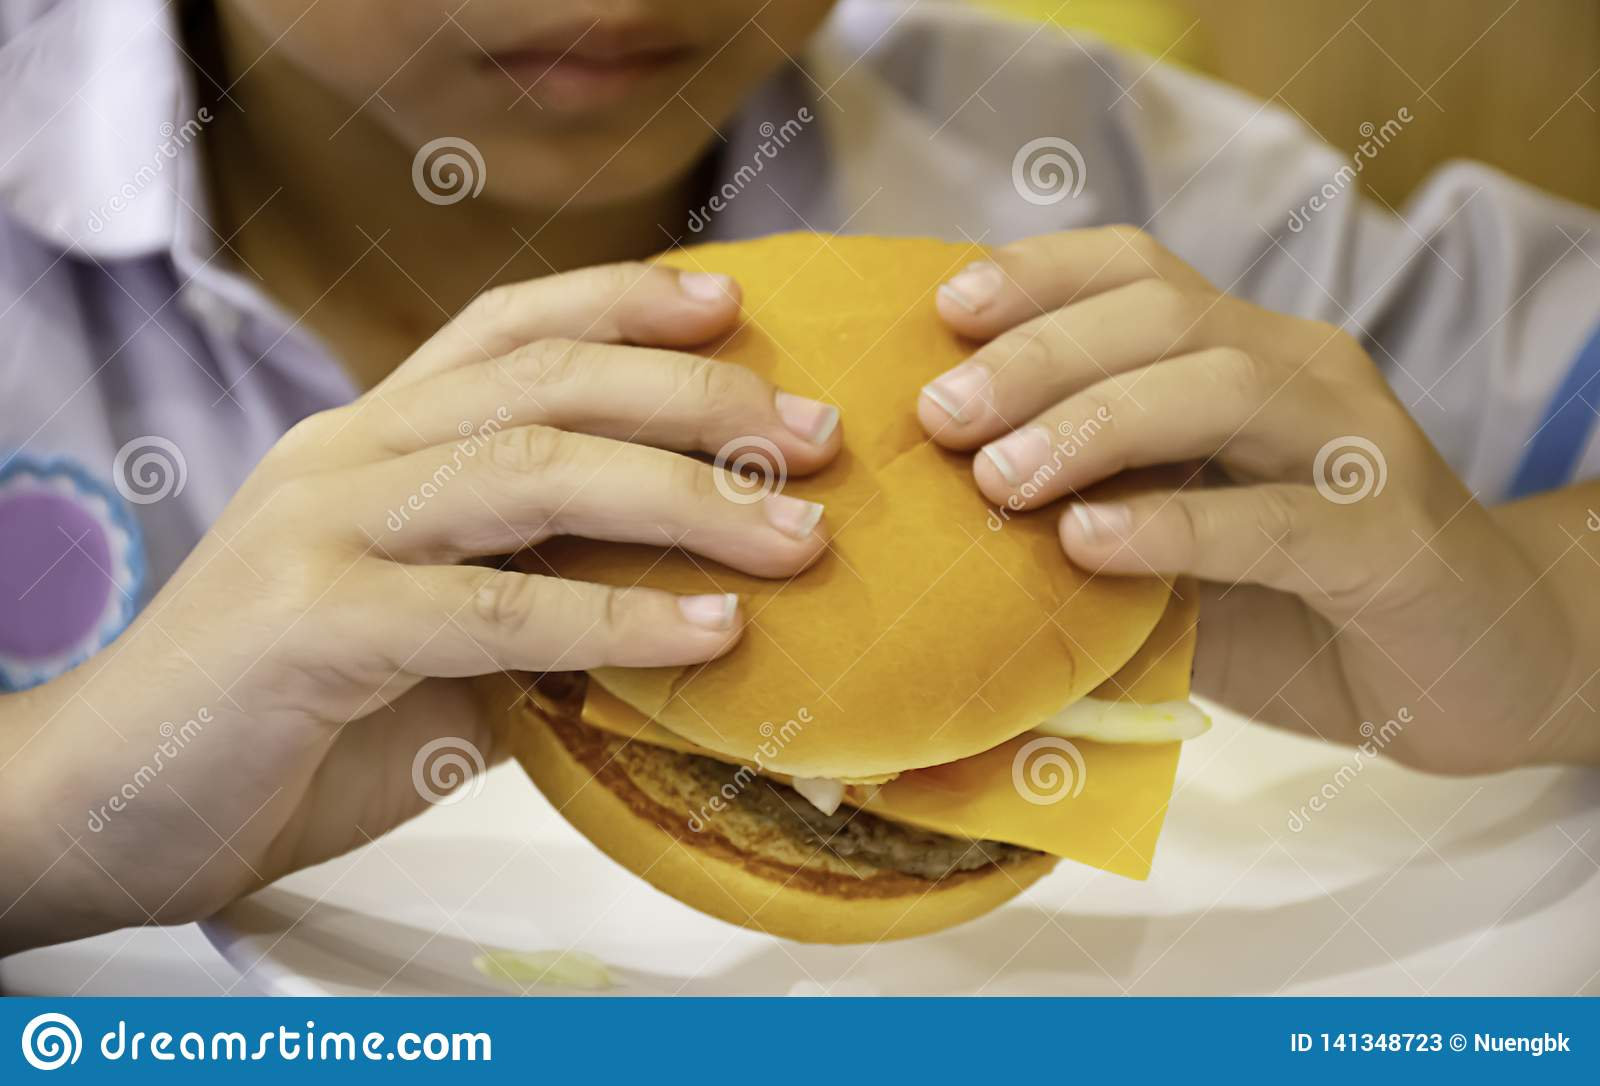 Hamburger fish and cheese in hand asia boy holding the eating